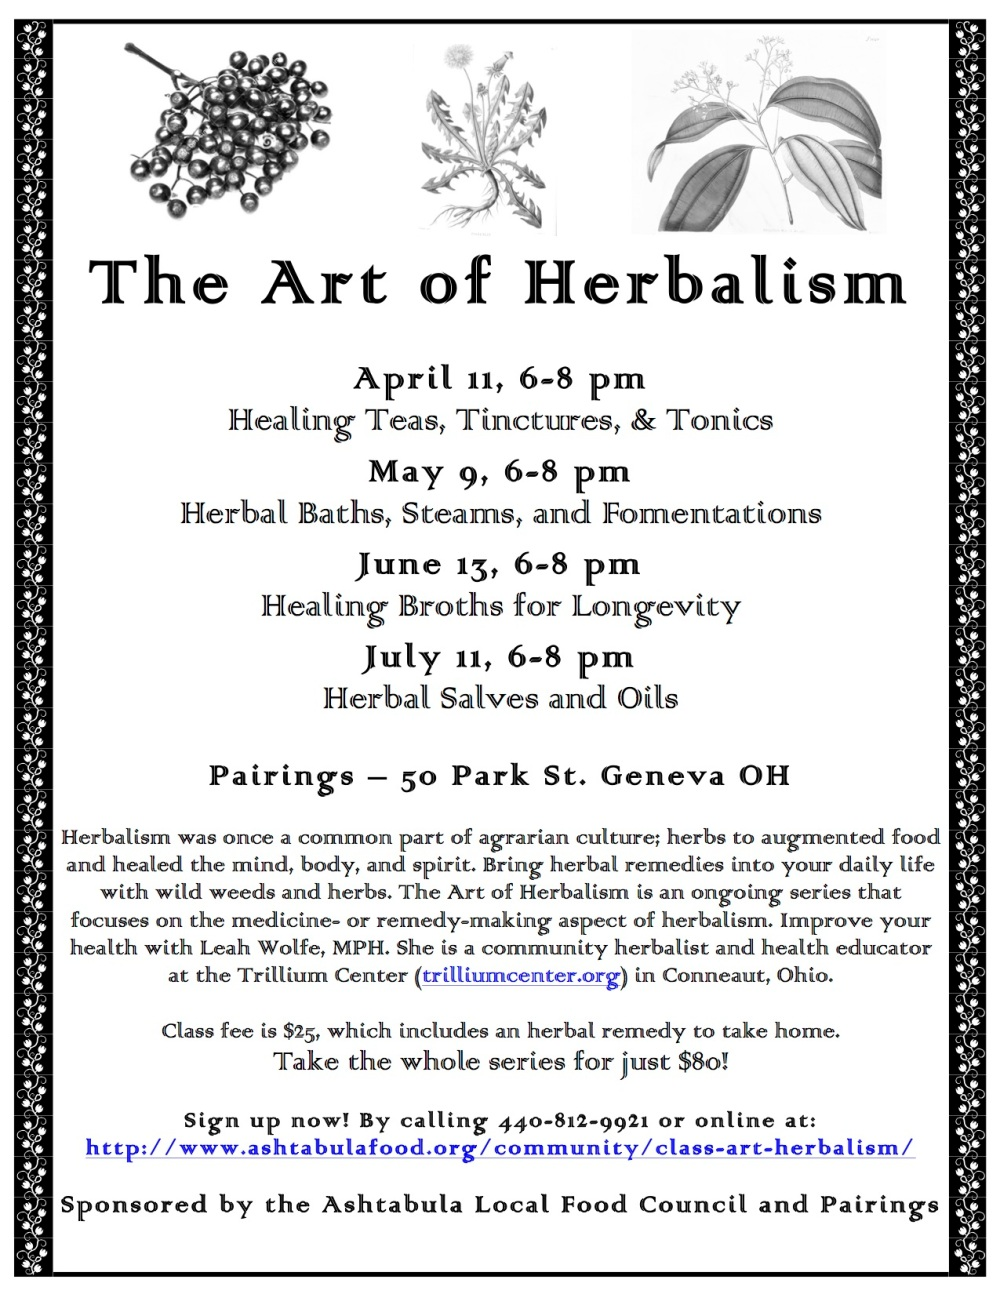 Art of Herbalism Series.jpg